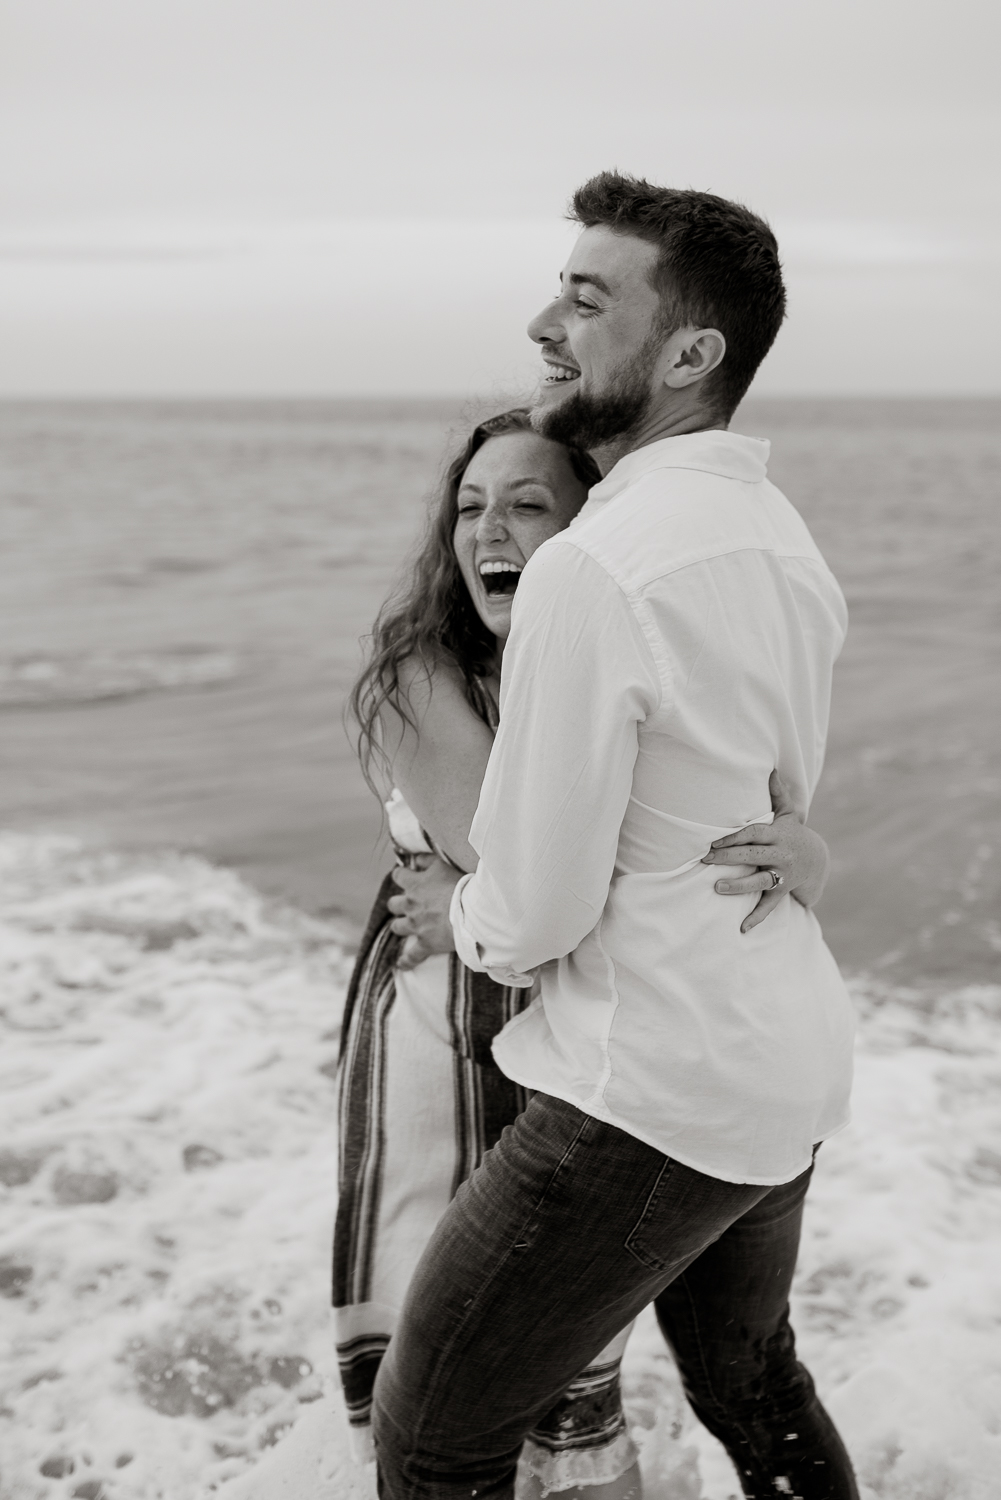 Couple on the beach in the water romantic engagement session black and white camille camacho photography